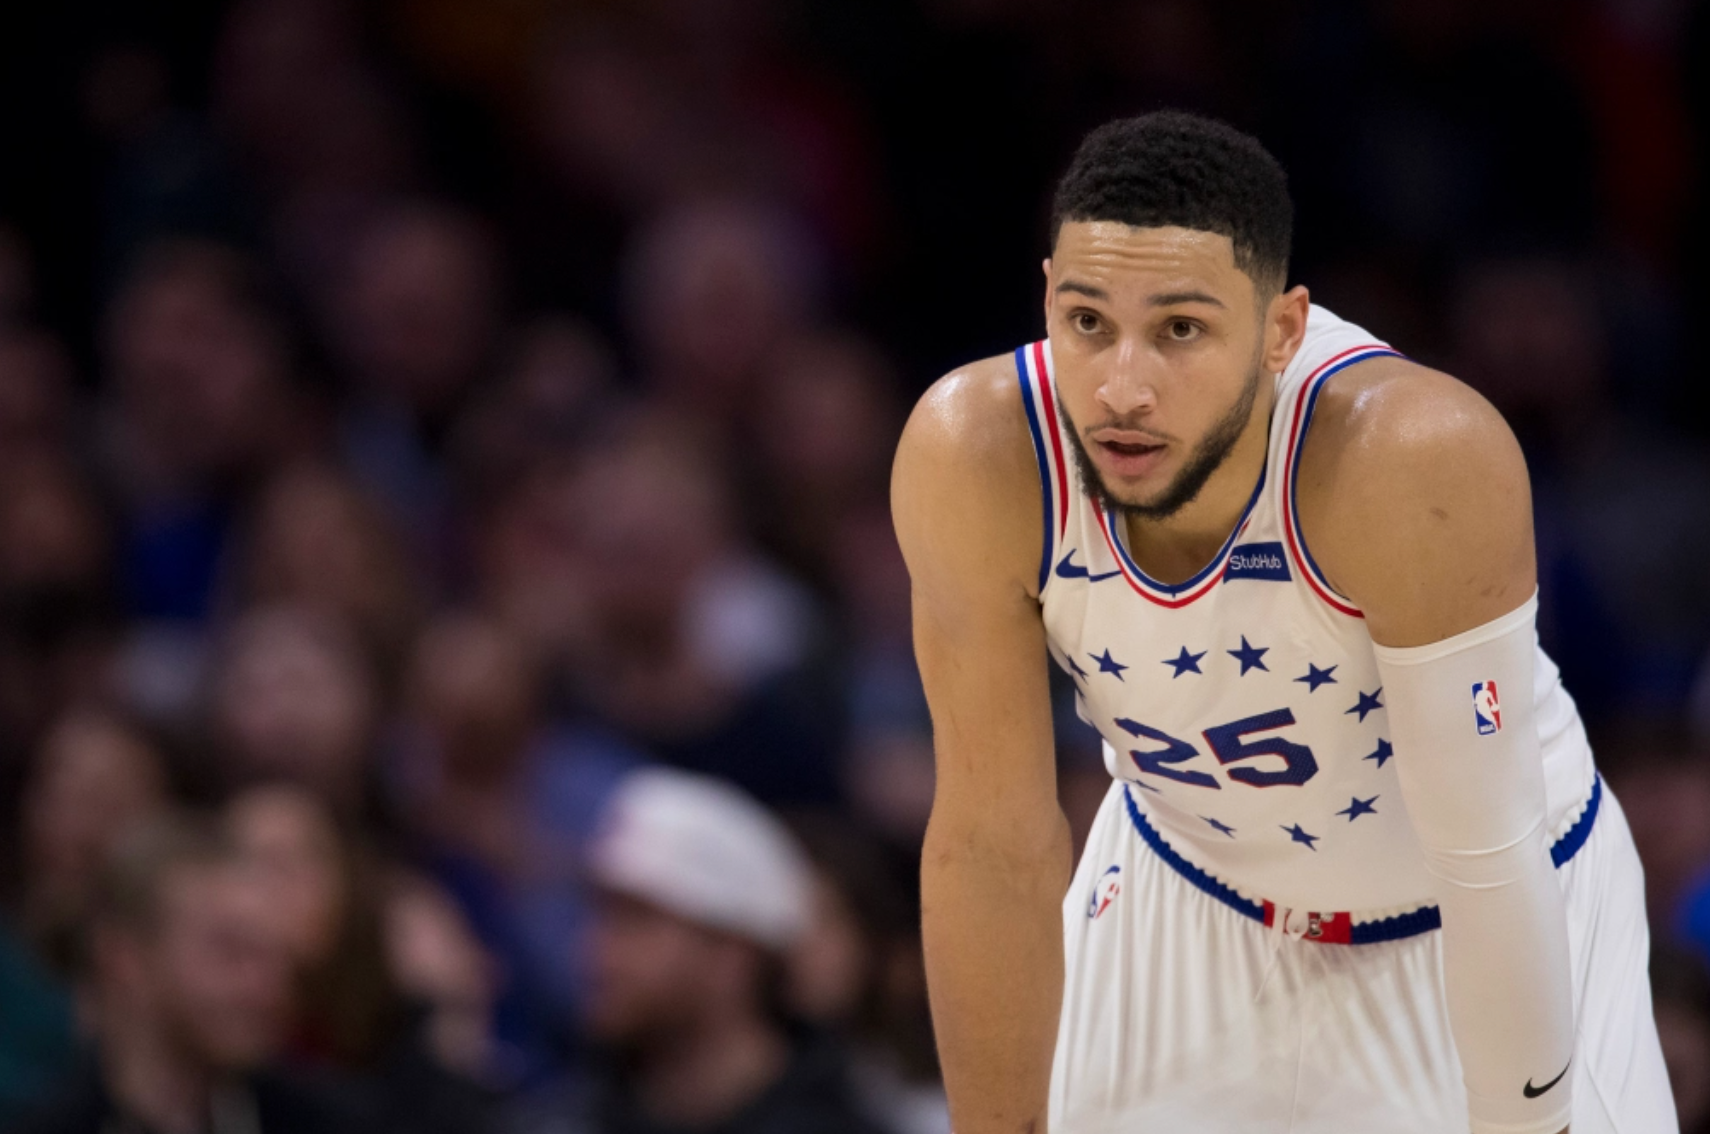 As A Ben Simmons Supporter, He Has To Be Better